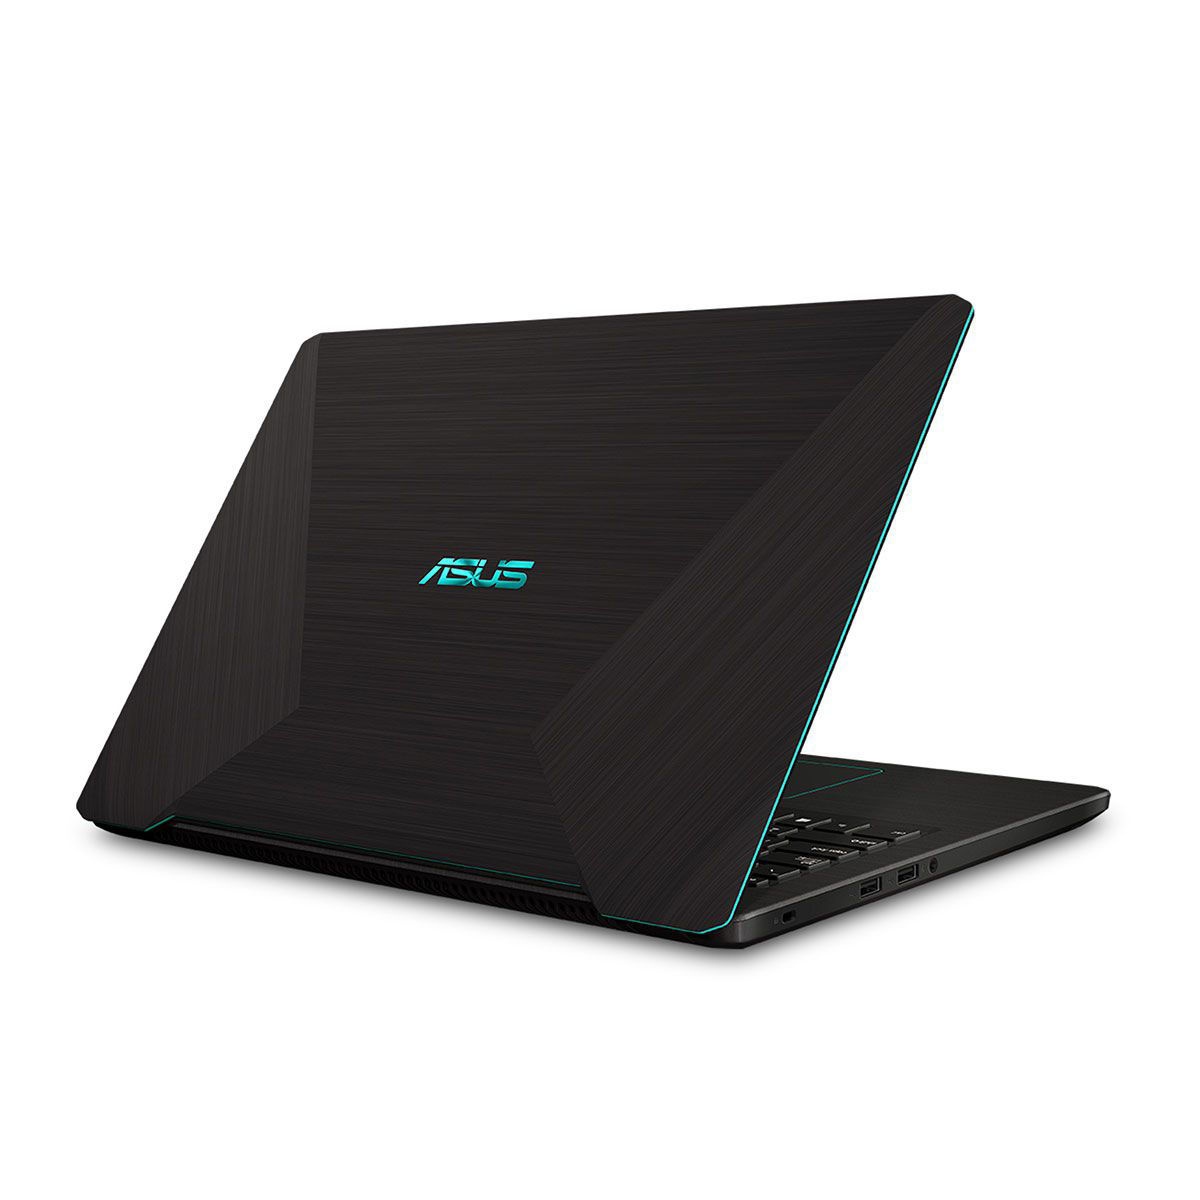 "Picture of ASUS VIVOBOOK 15.6"" GAMING LAPTOP"